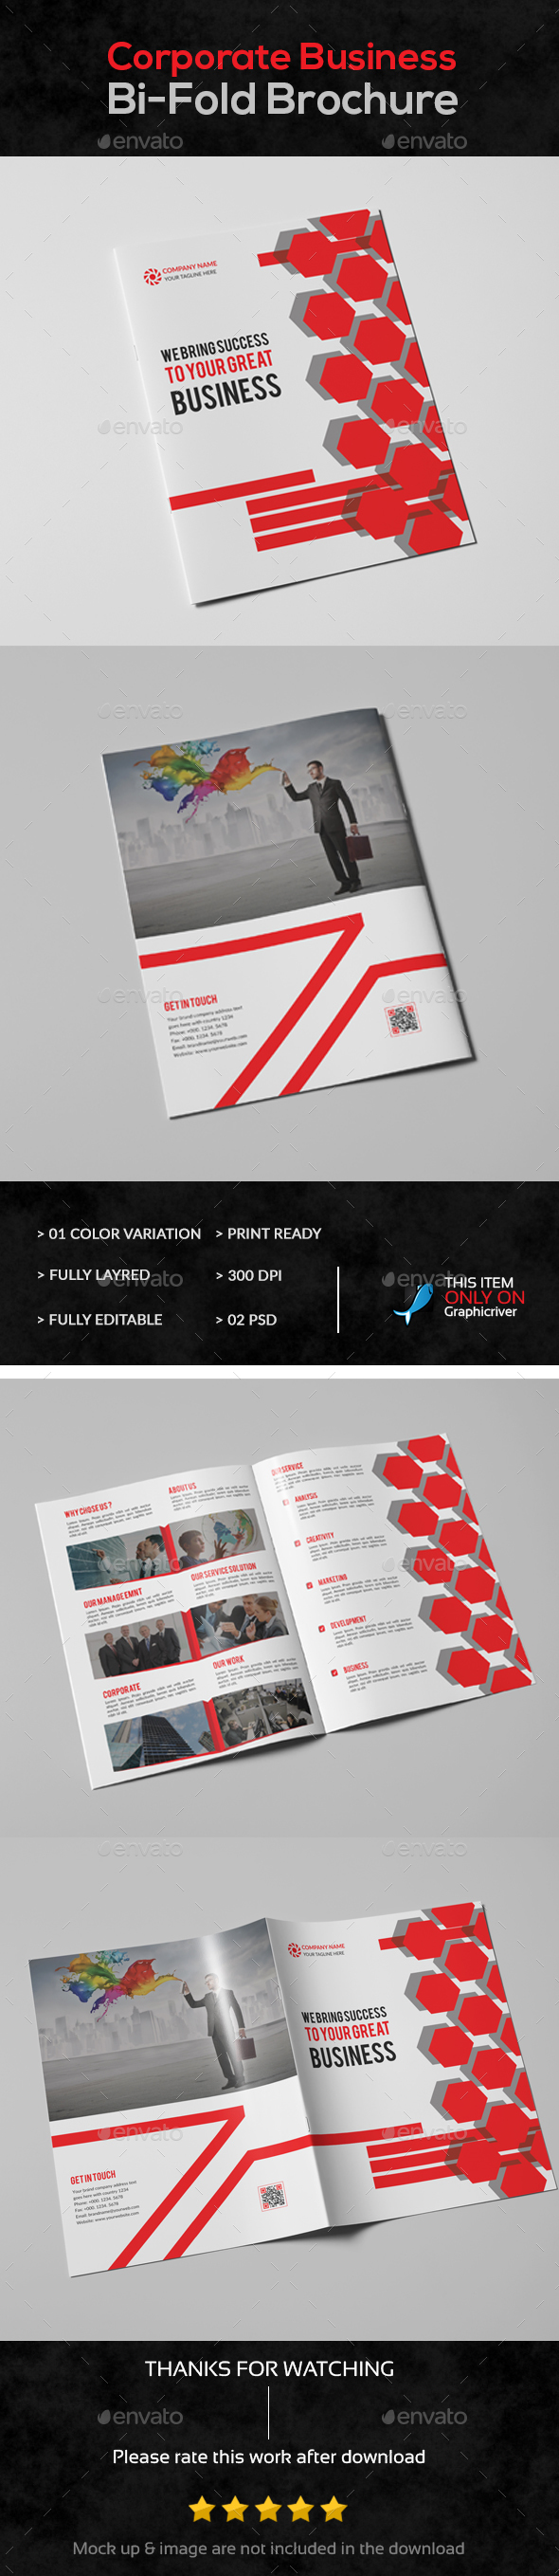 Corporate Business Bi-Fold Brochure - Brochures Print Templates